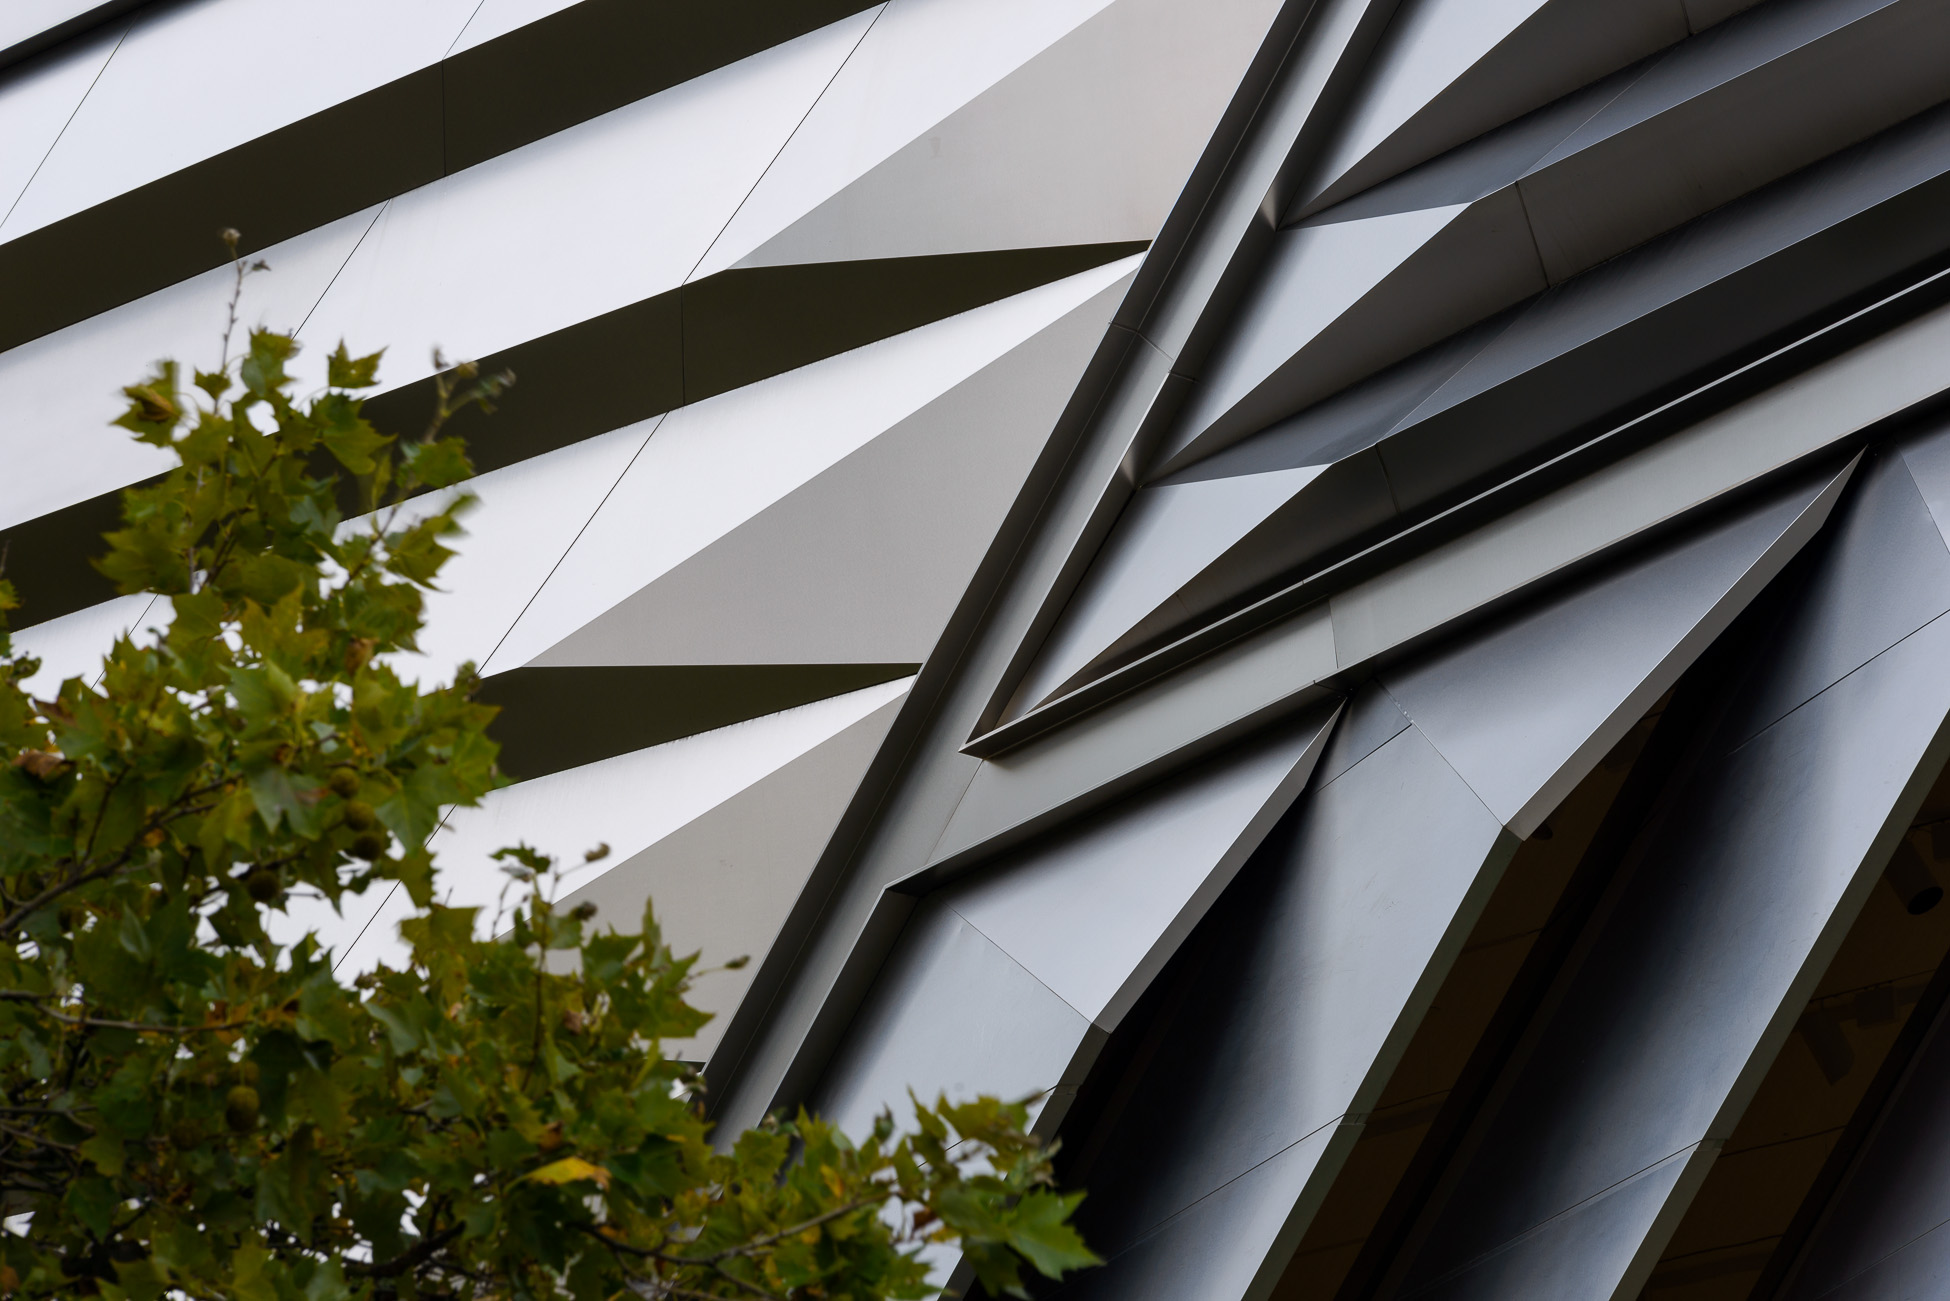 50-Zaha Hadid Broad Museum Lansing Doublespace Toronto Architectural Photography.jpg